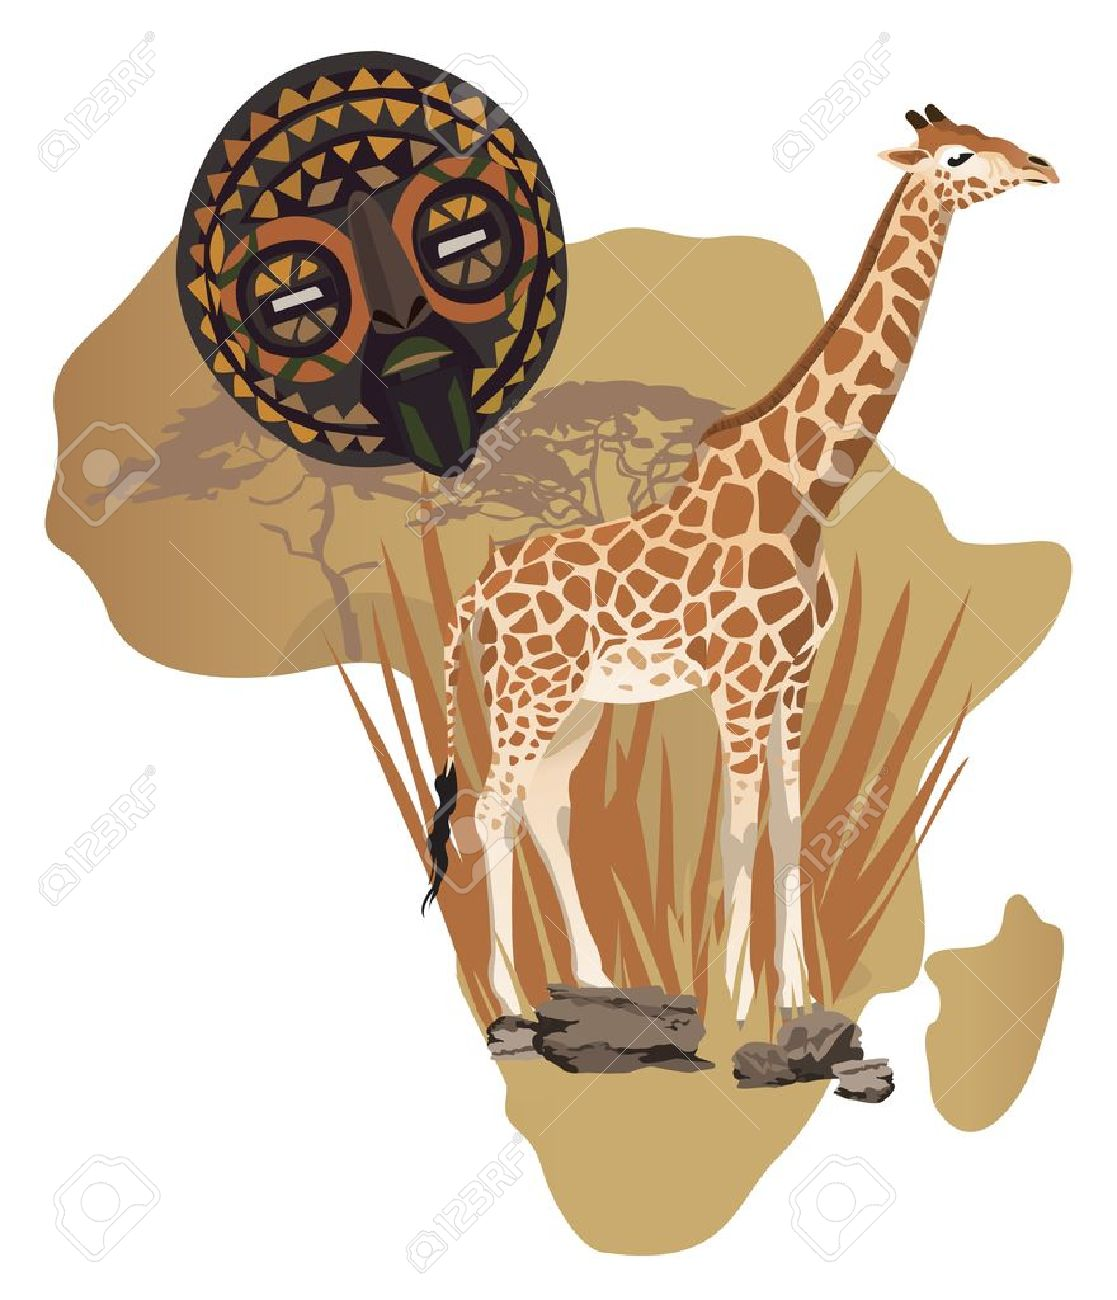 Illustration with Africa map and African symbols Stock Vector - 12194611